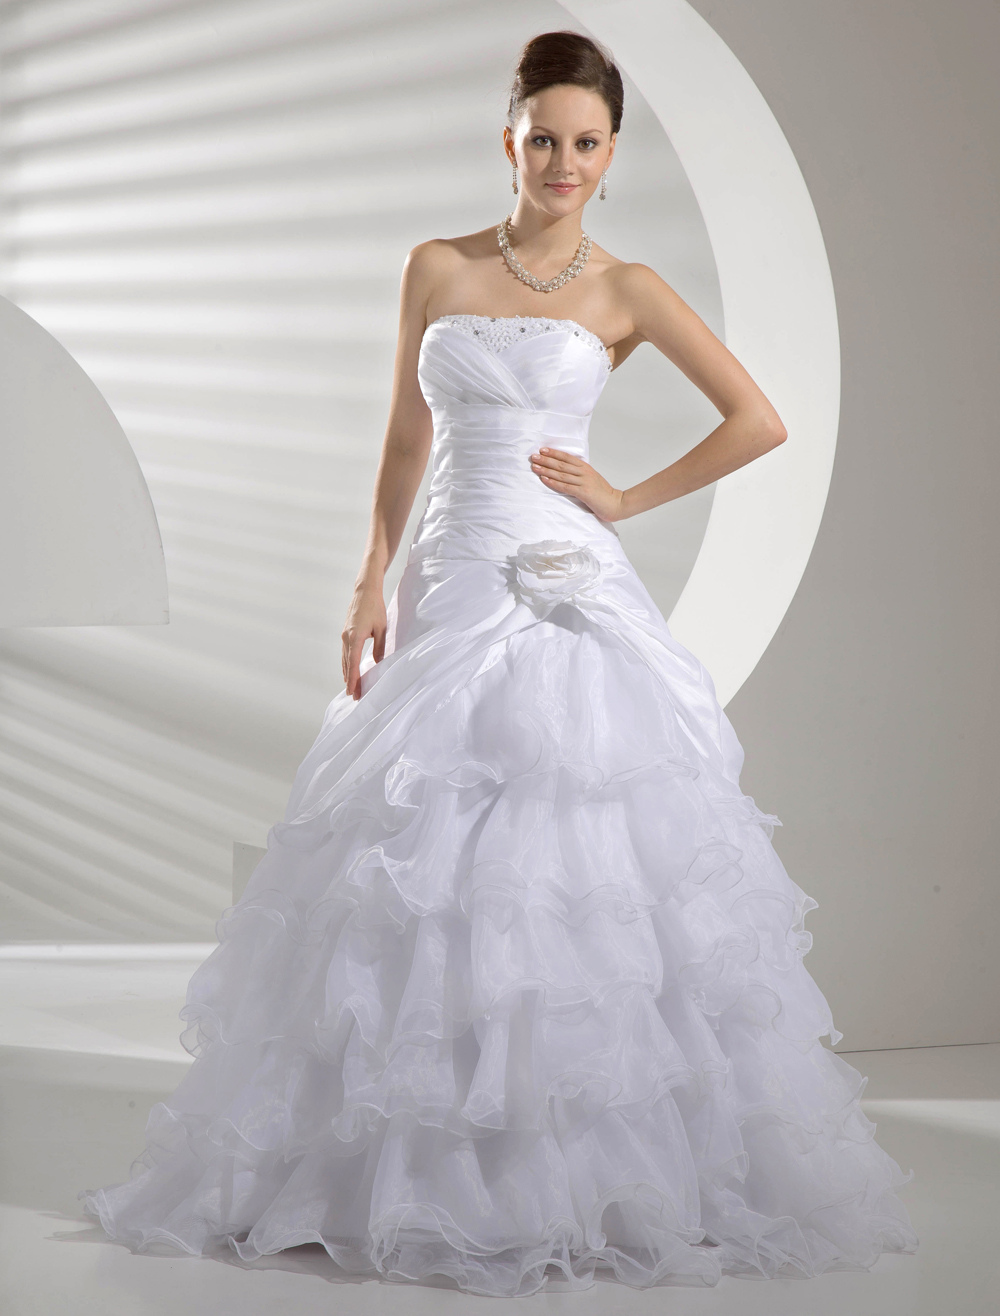 Used Wedding Dresses Under 100 Jewellery : White taffeta organza pick up organdie wedding dress milanoo